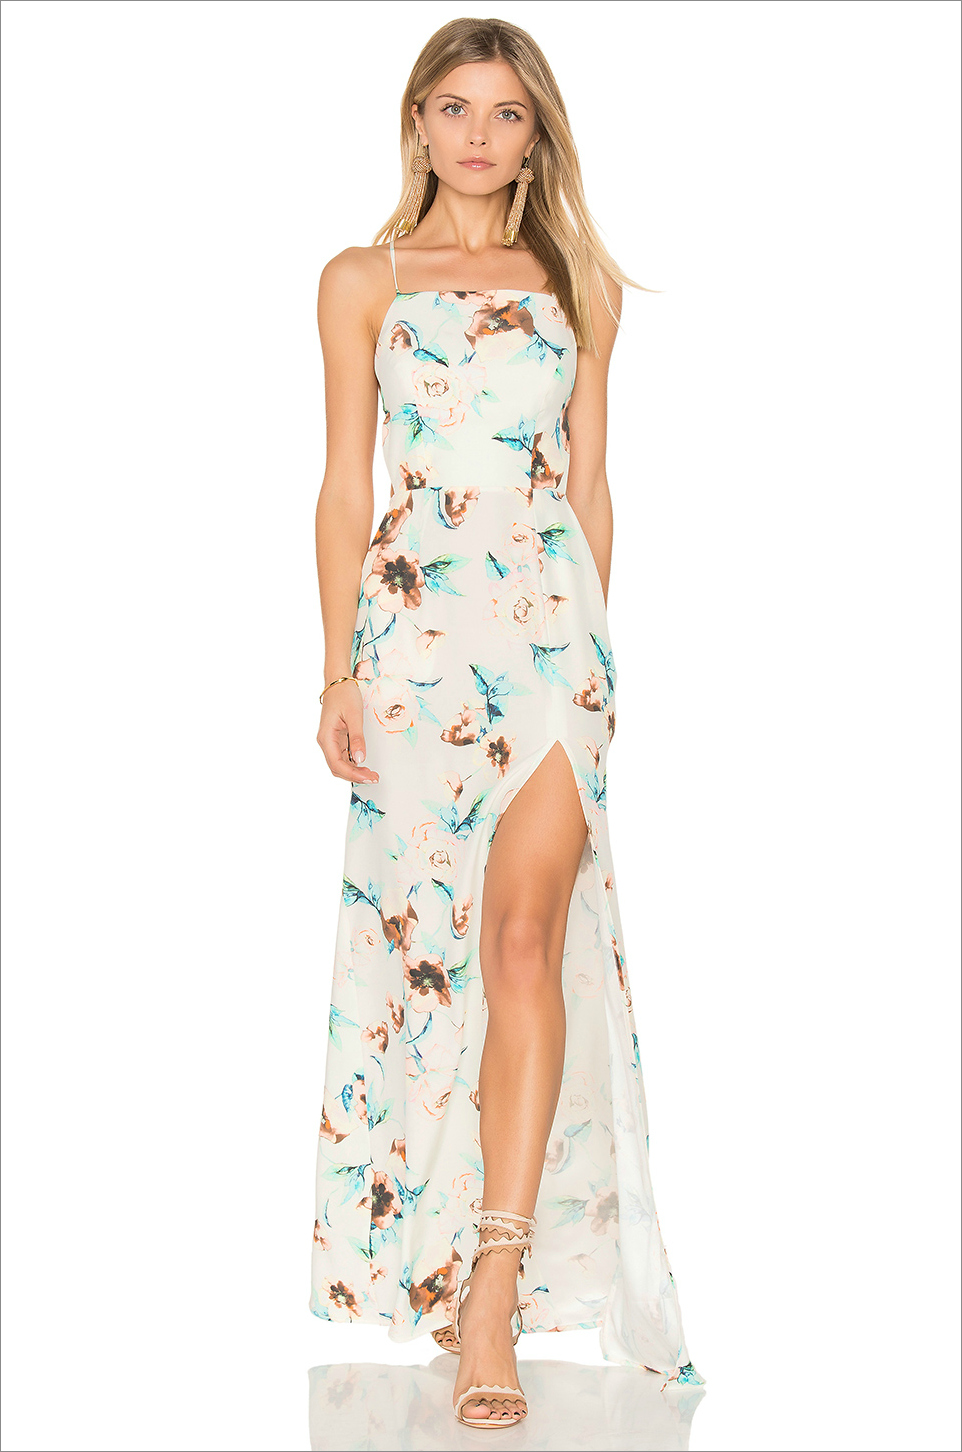 Stone Cold Fox Moss gown wedding guest dress ideas slit flower print